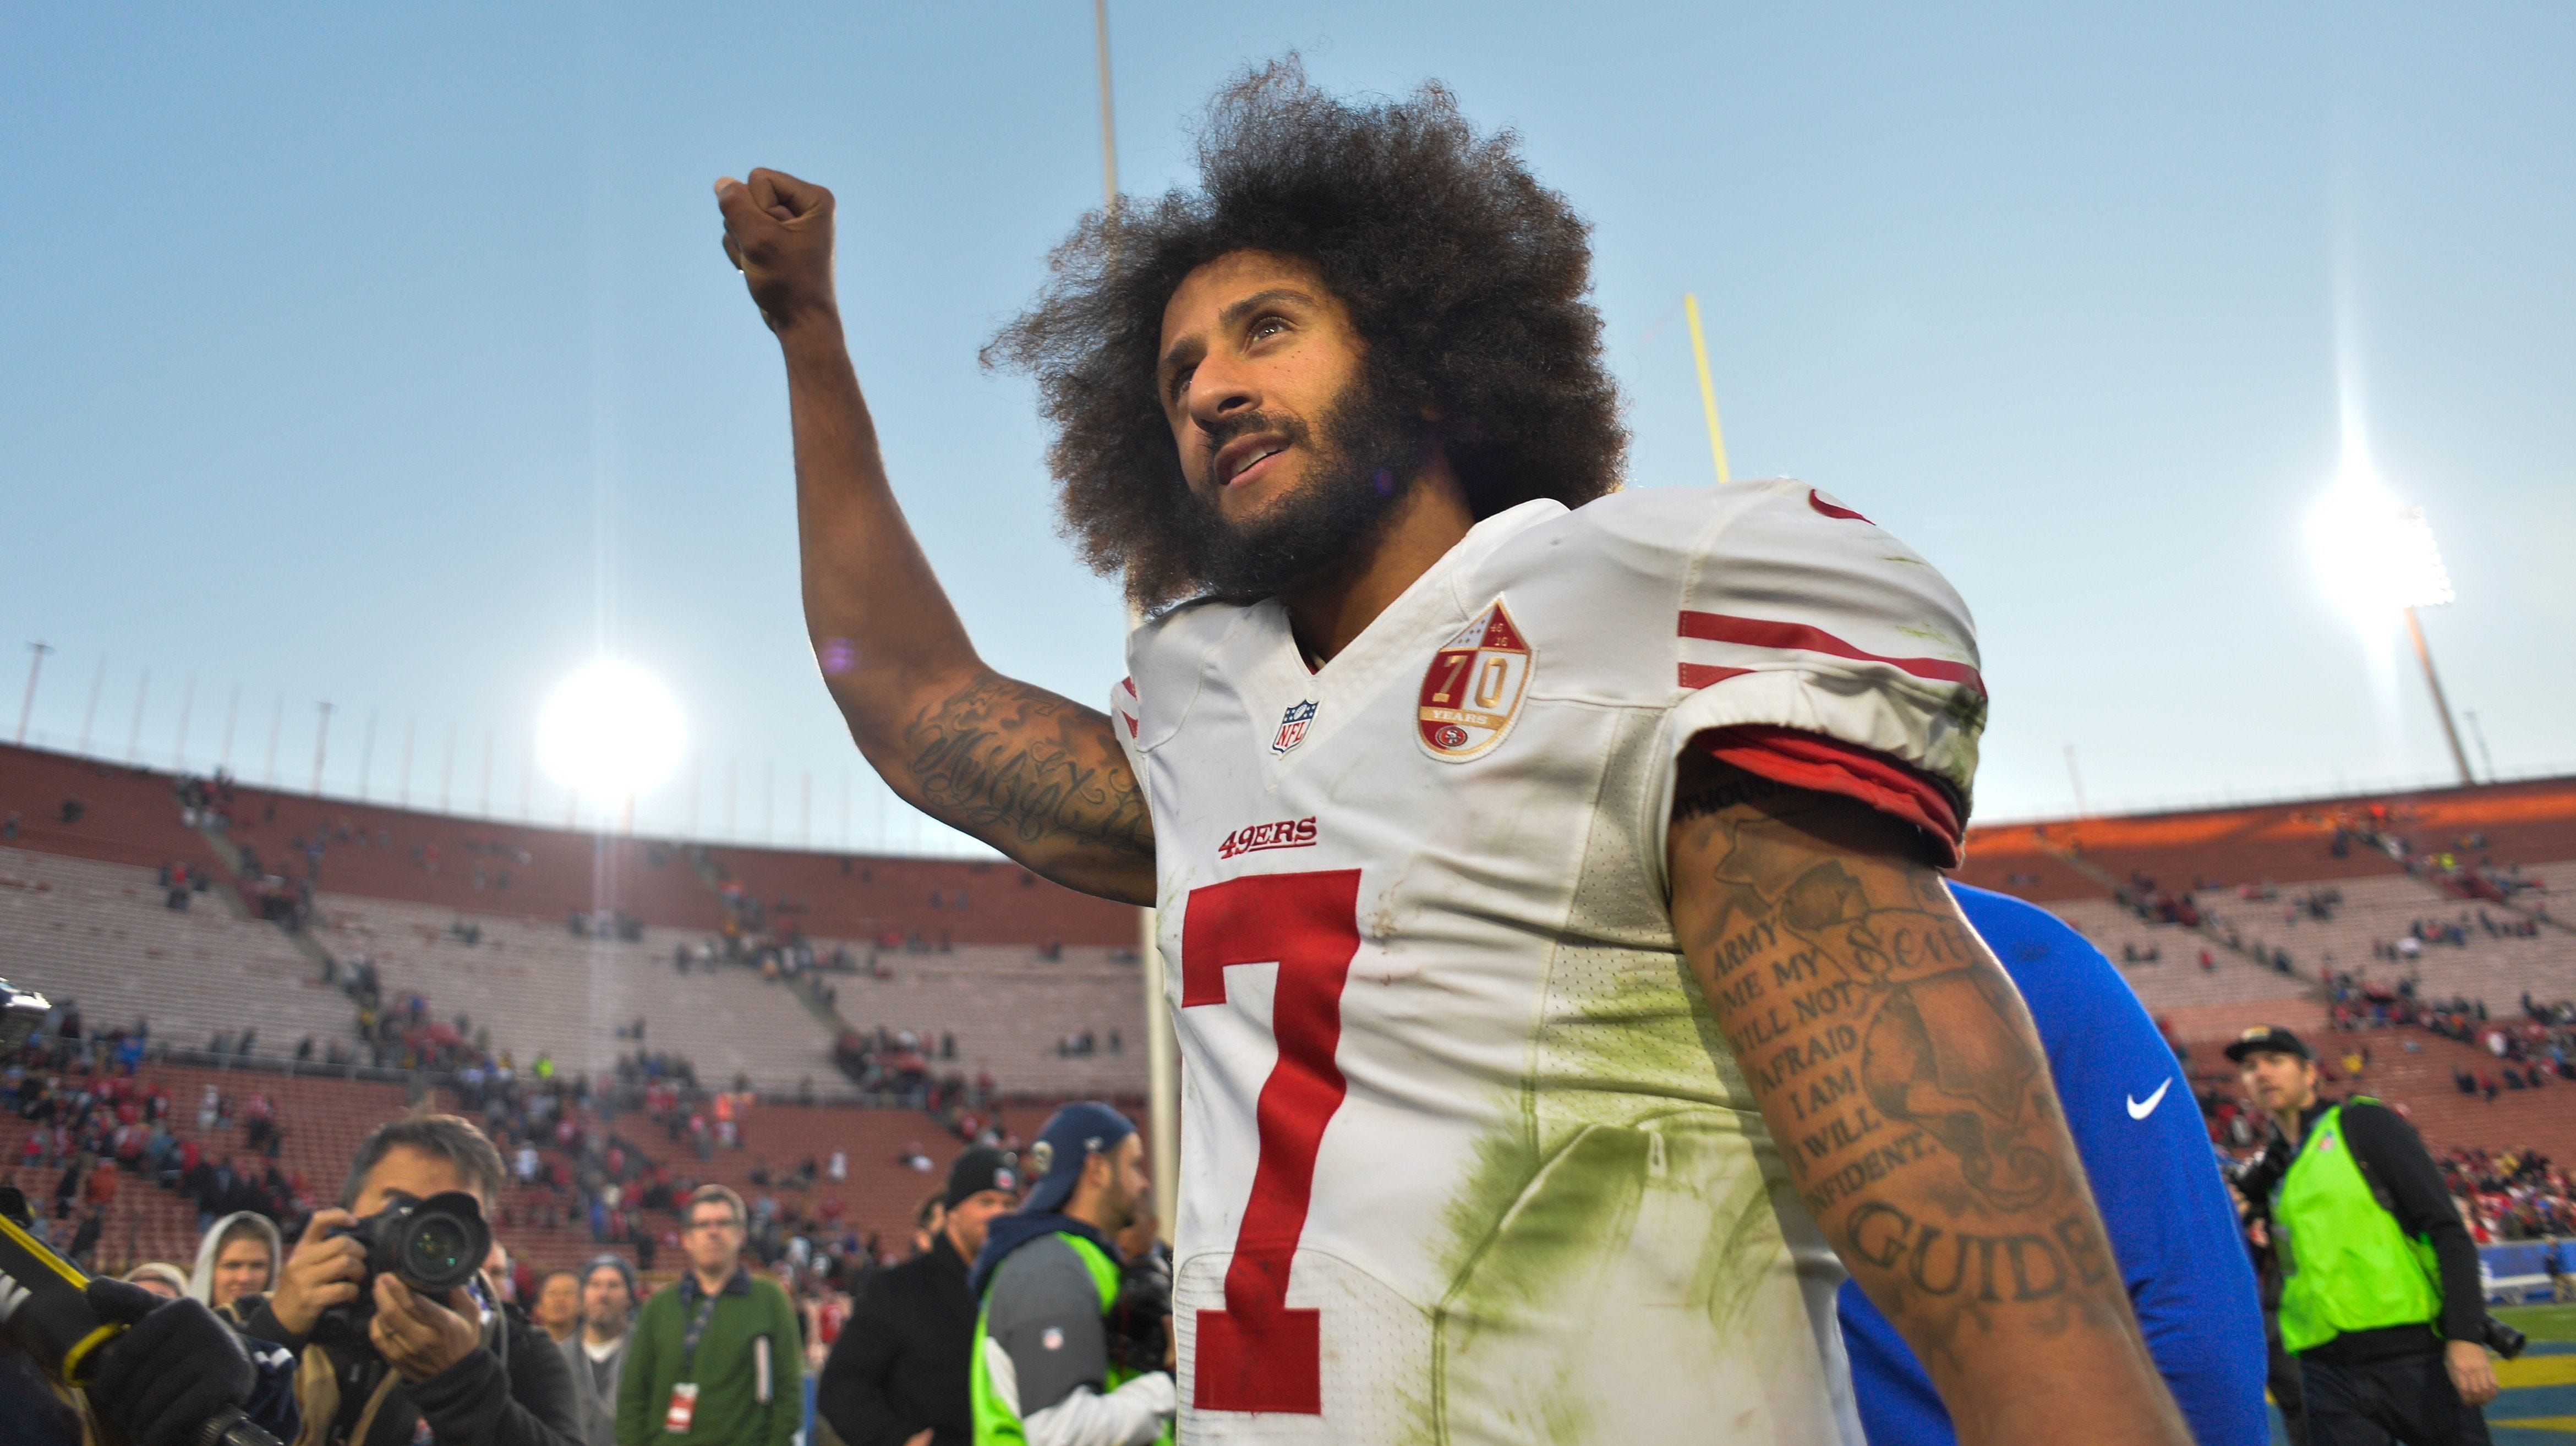 Colin Kaepernick inspires a movement with his absence